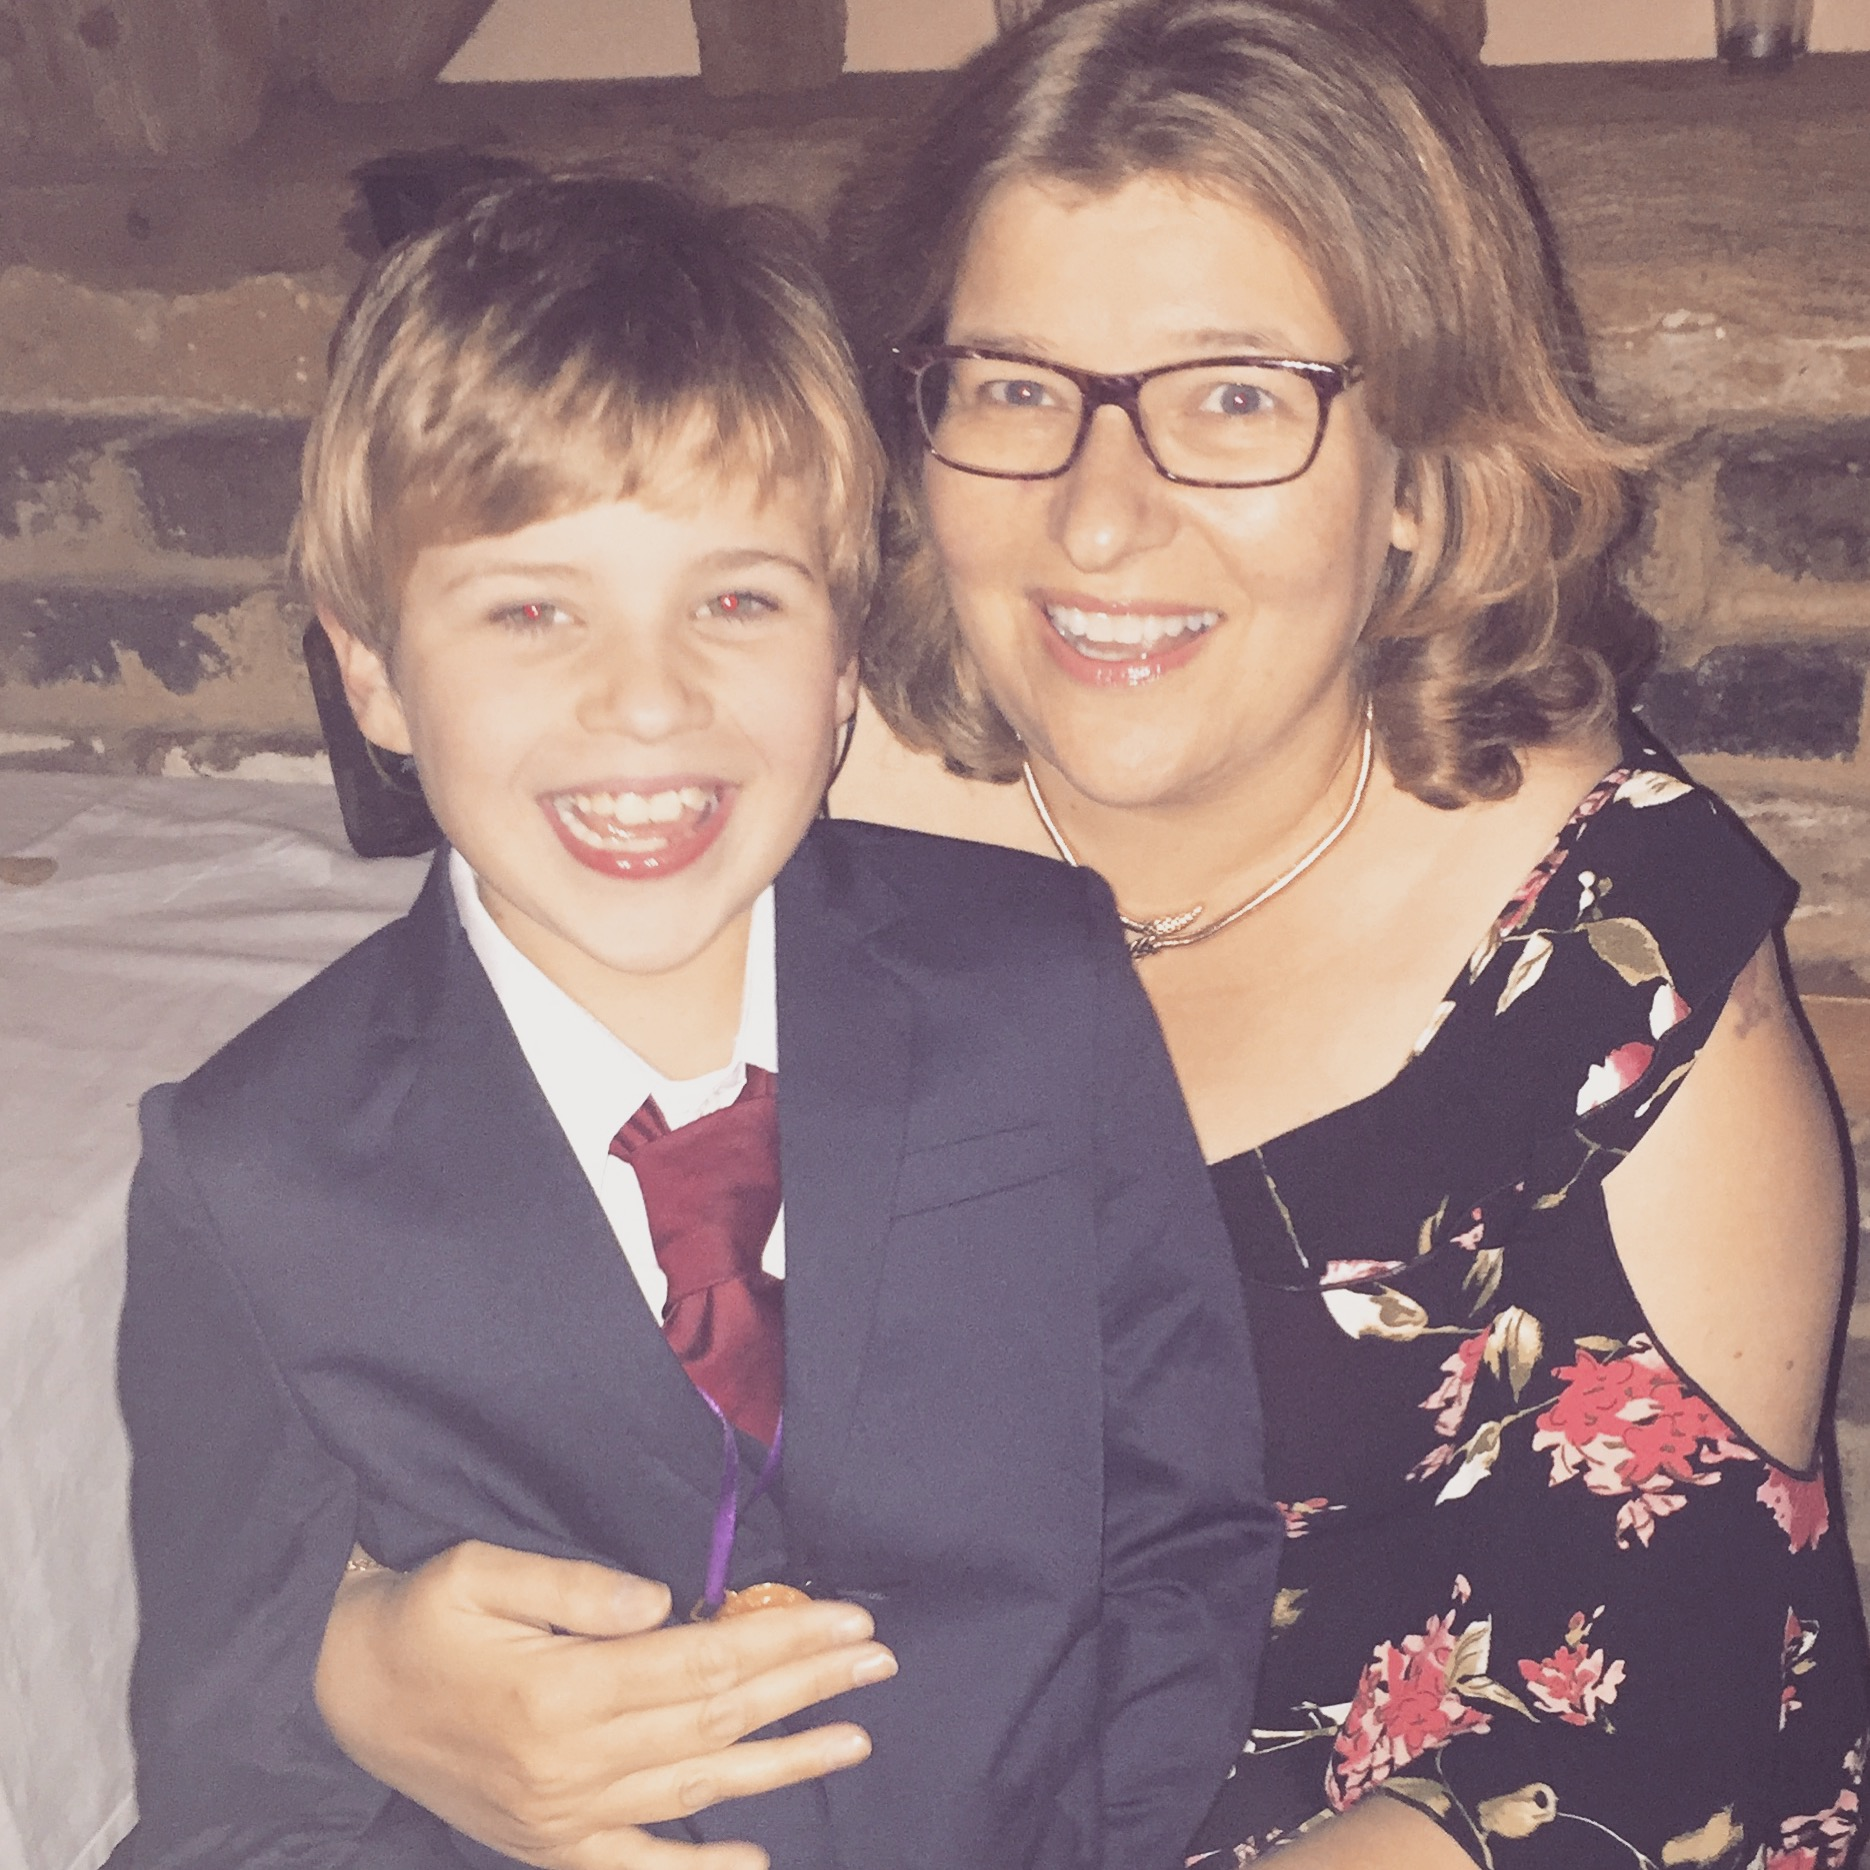 Charlotte Parmley-Gibbs and her son Jack Parmley